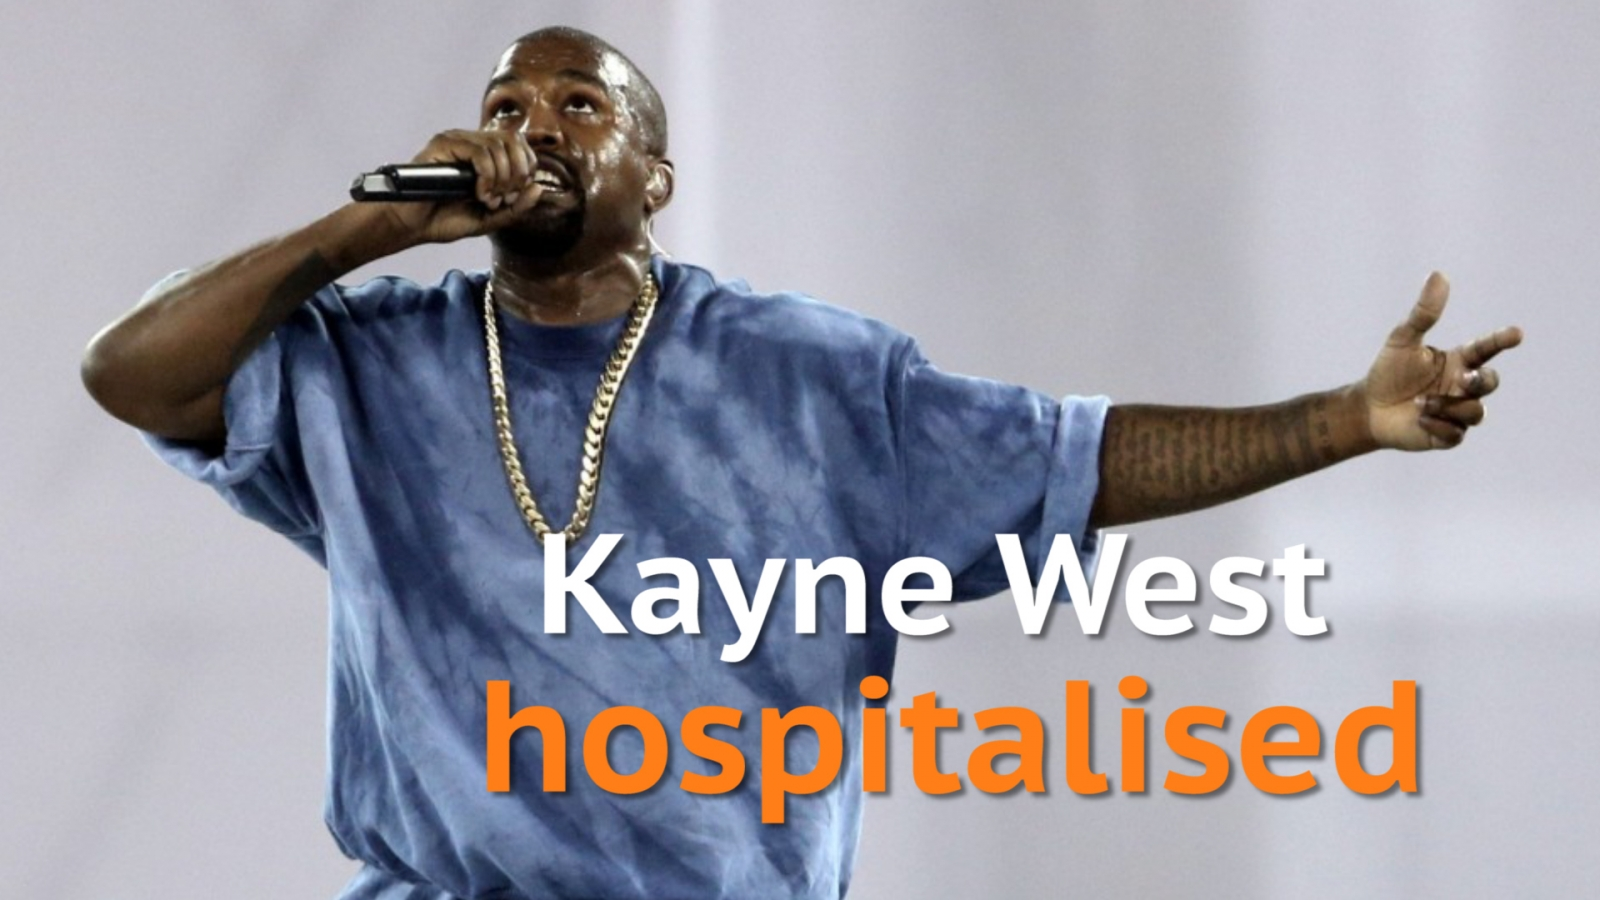 Twitter reacts after Kayne West reportedly hospitalised